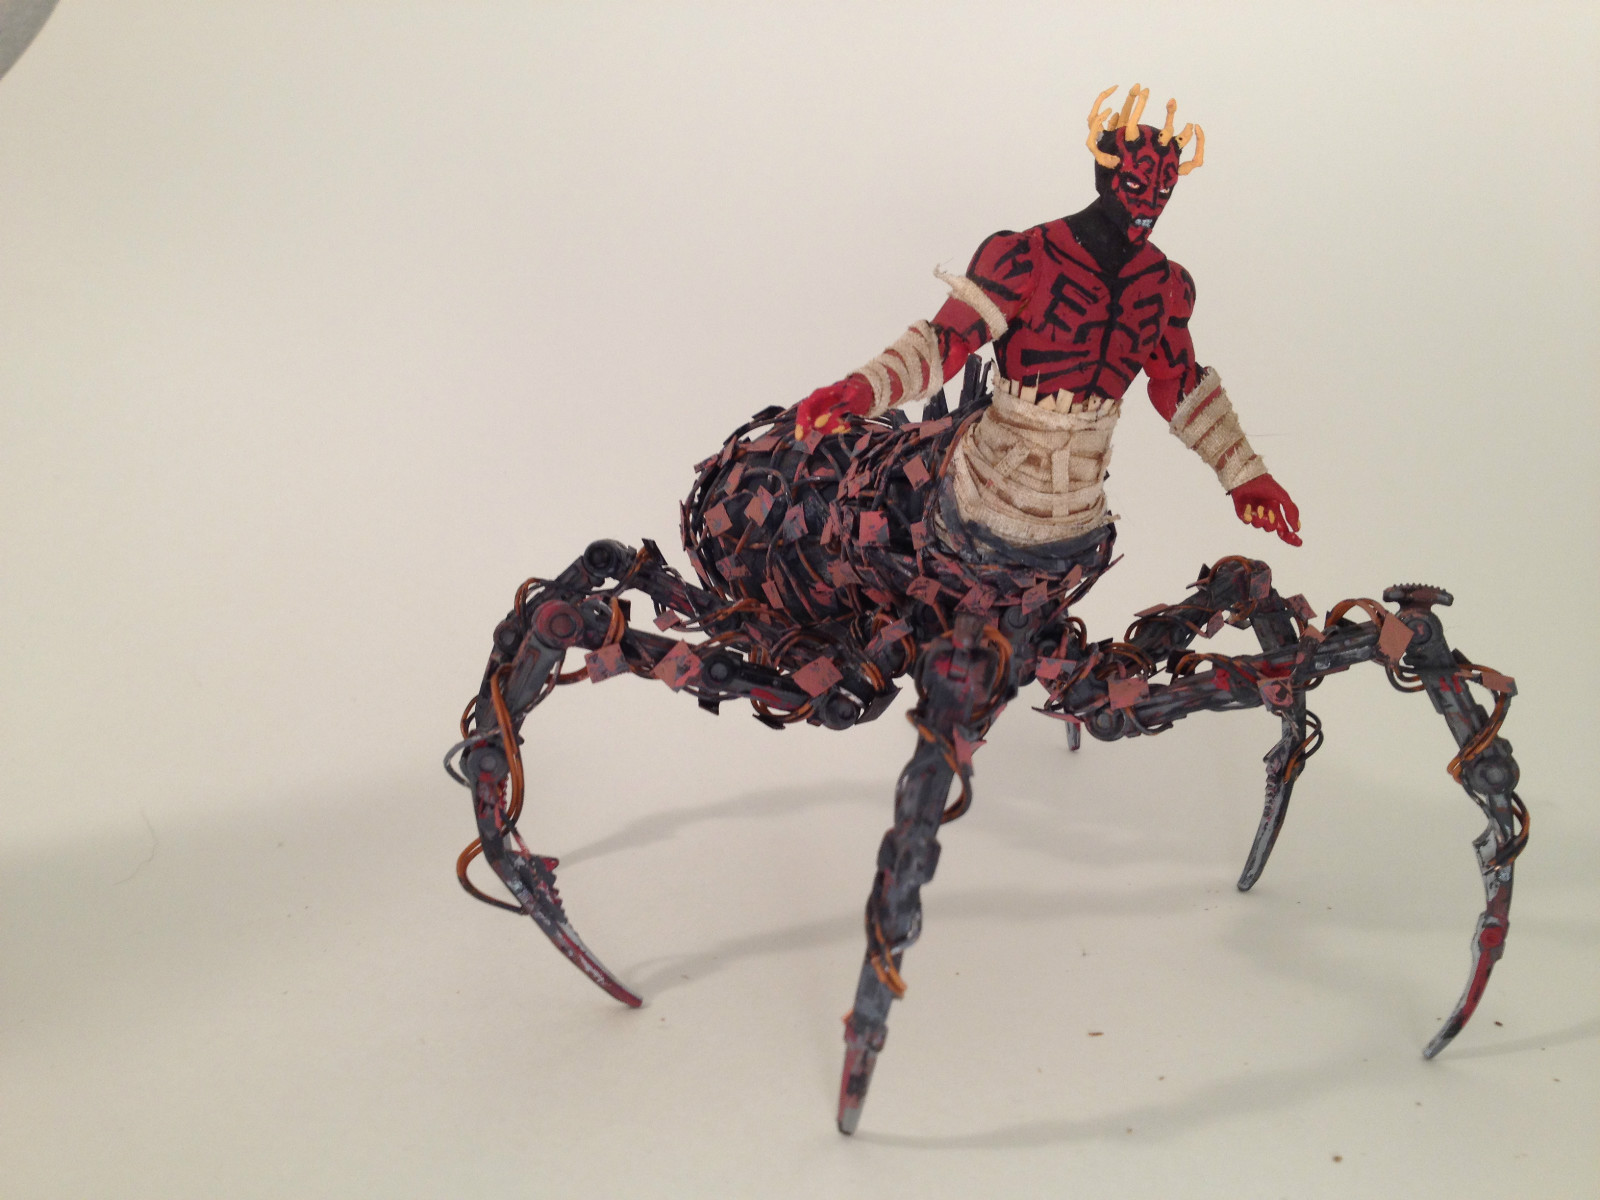 toycutter: Mecha-spider Darth Maul action figure